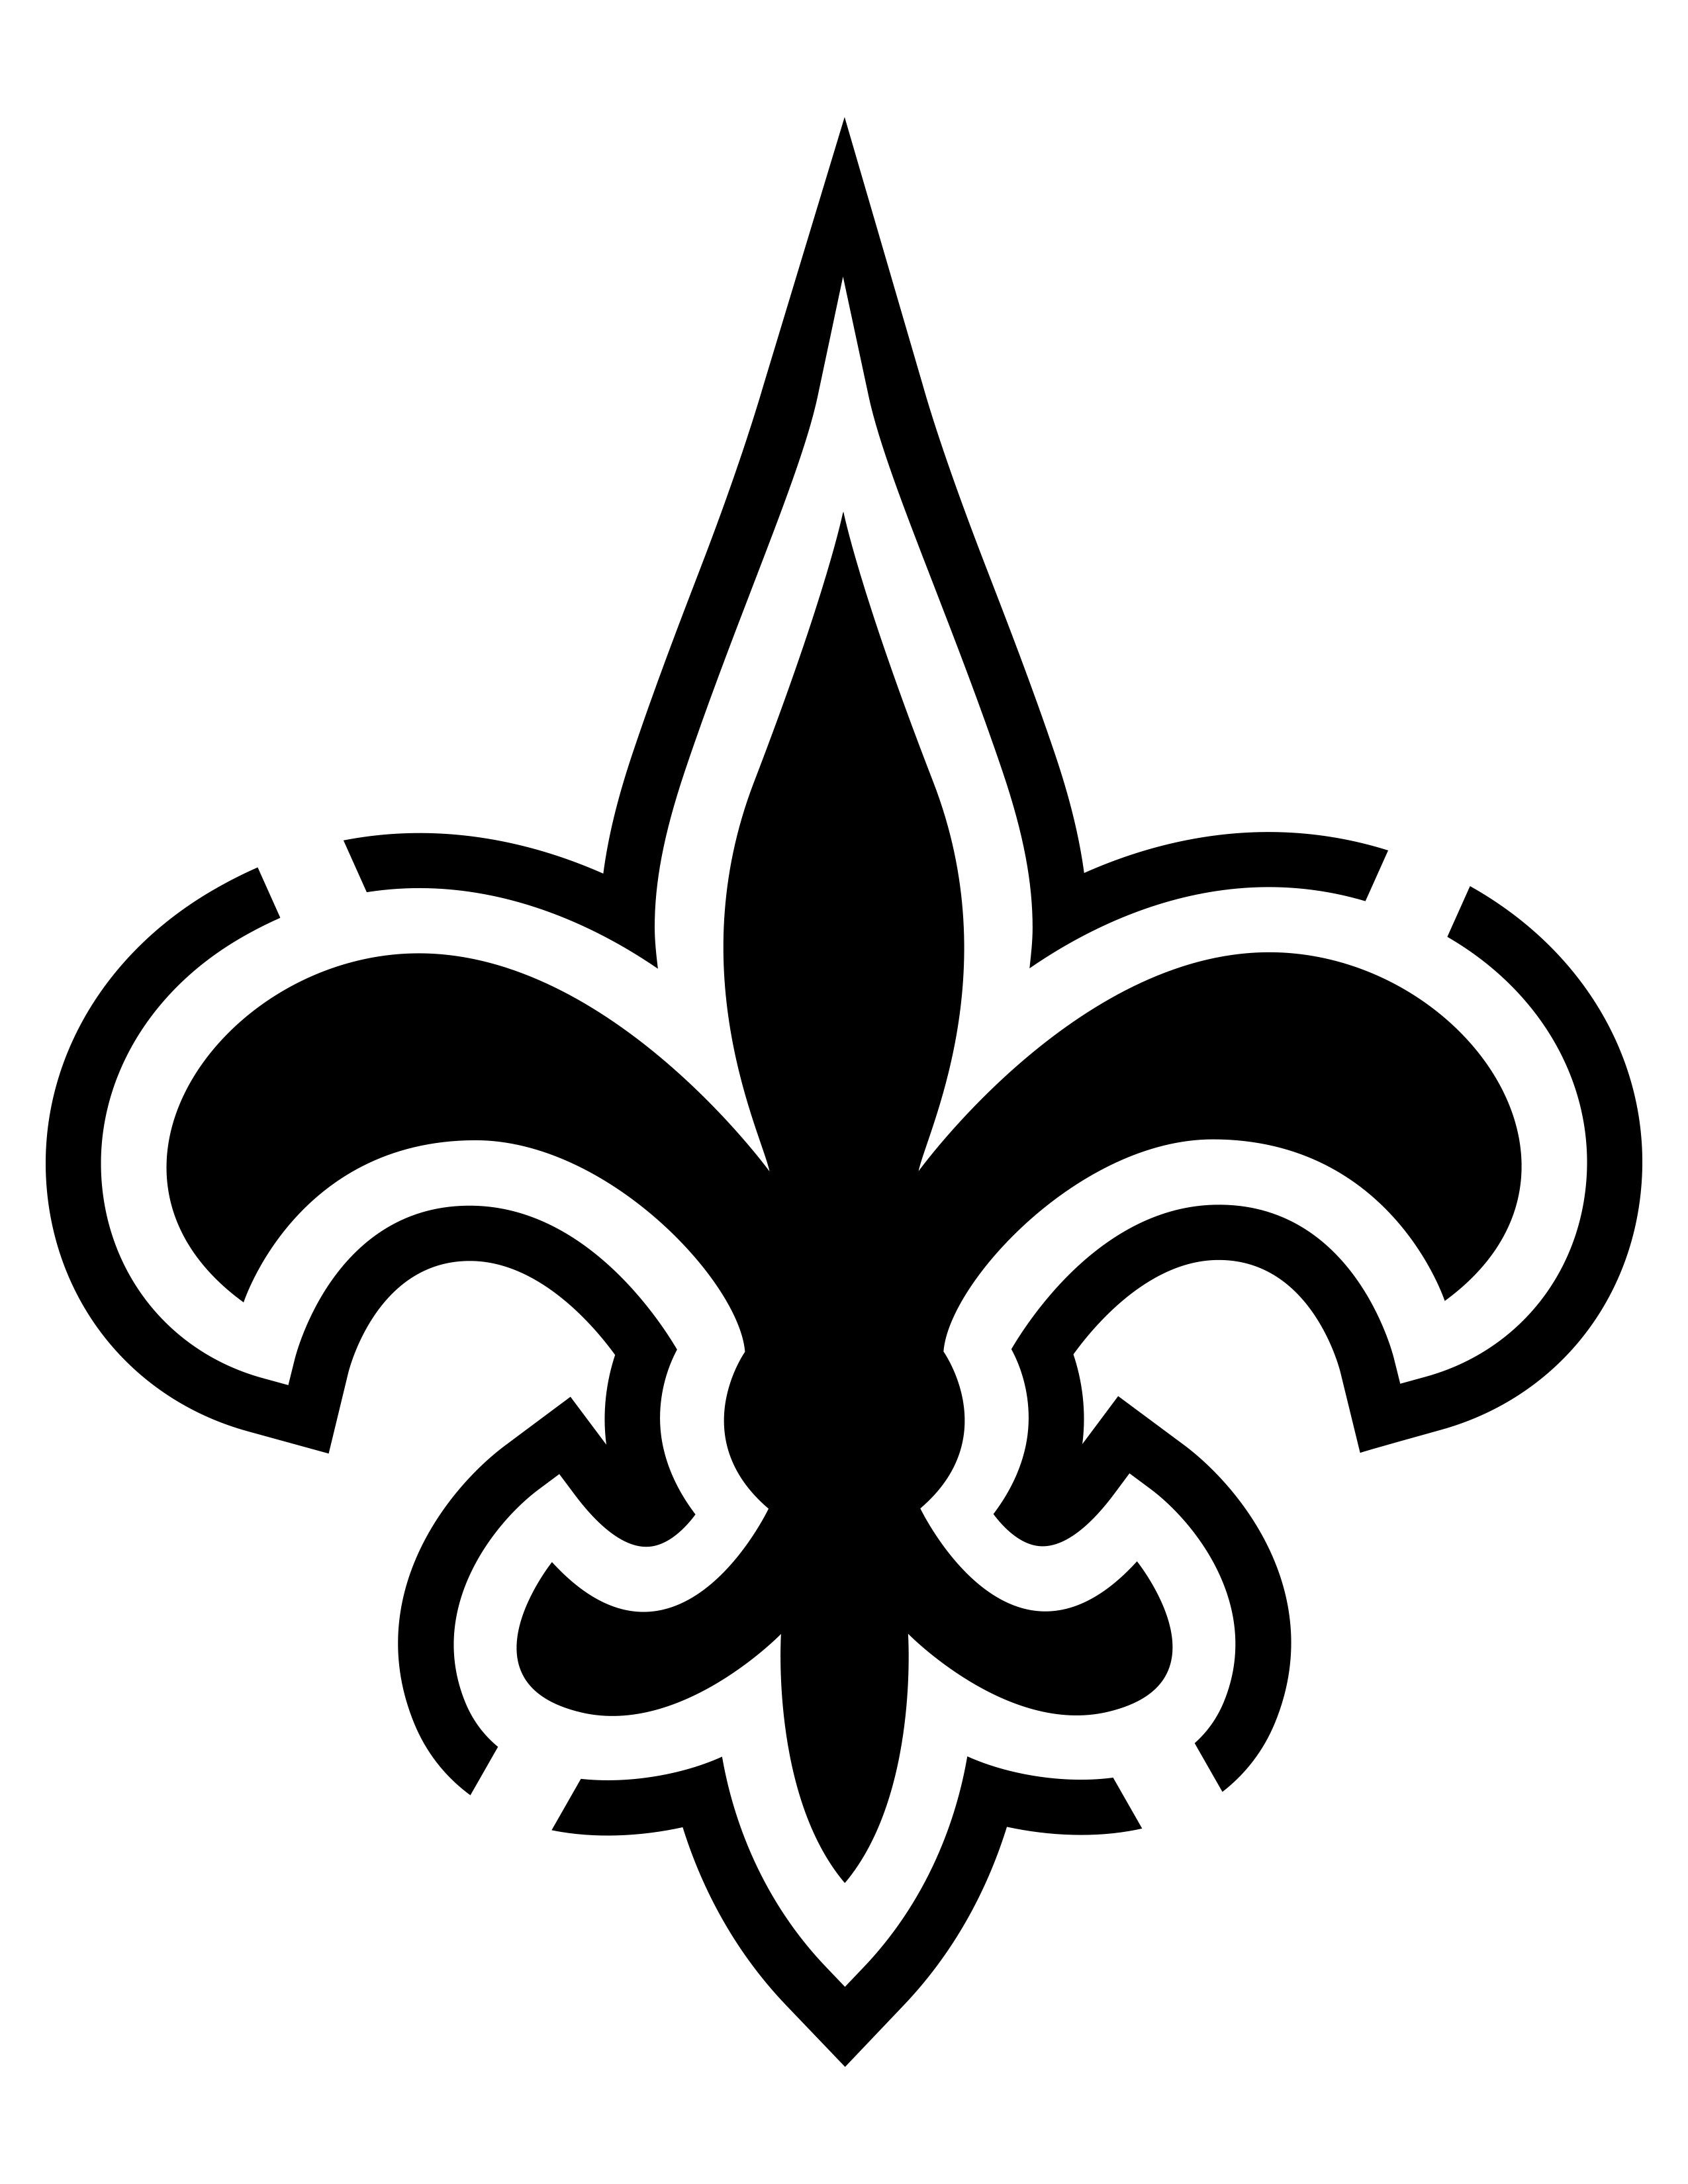 Image result for New Orleans saints stencil | Scroll saw ideas ...